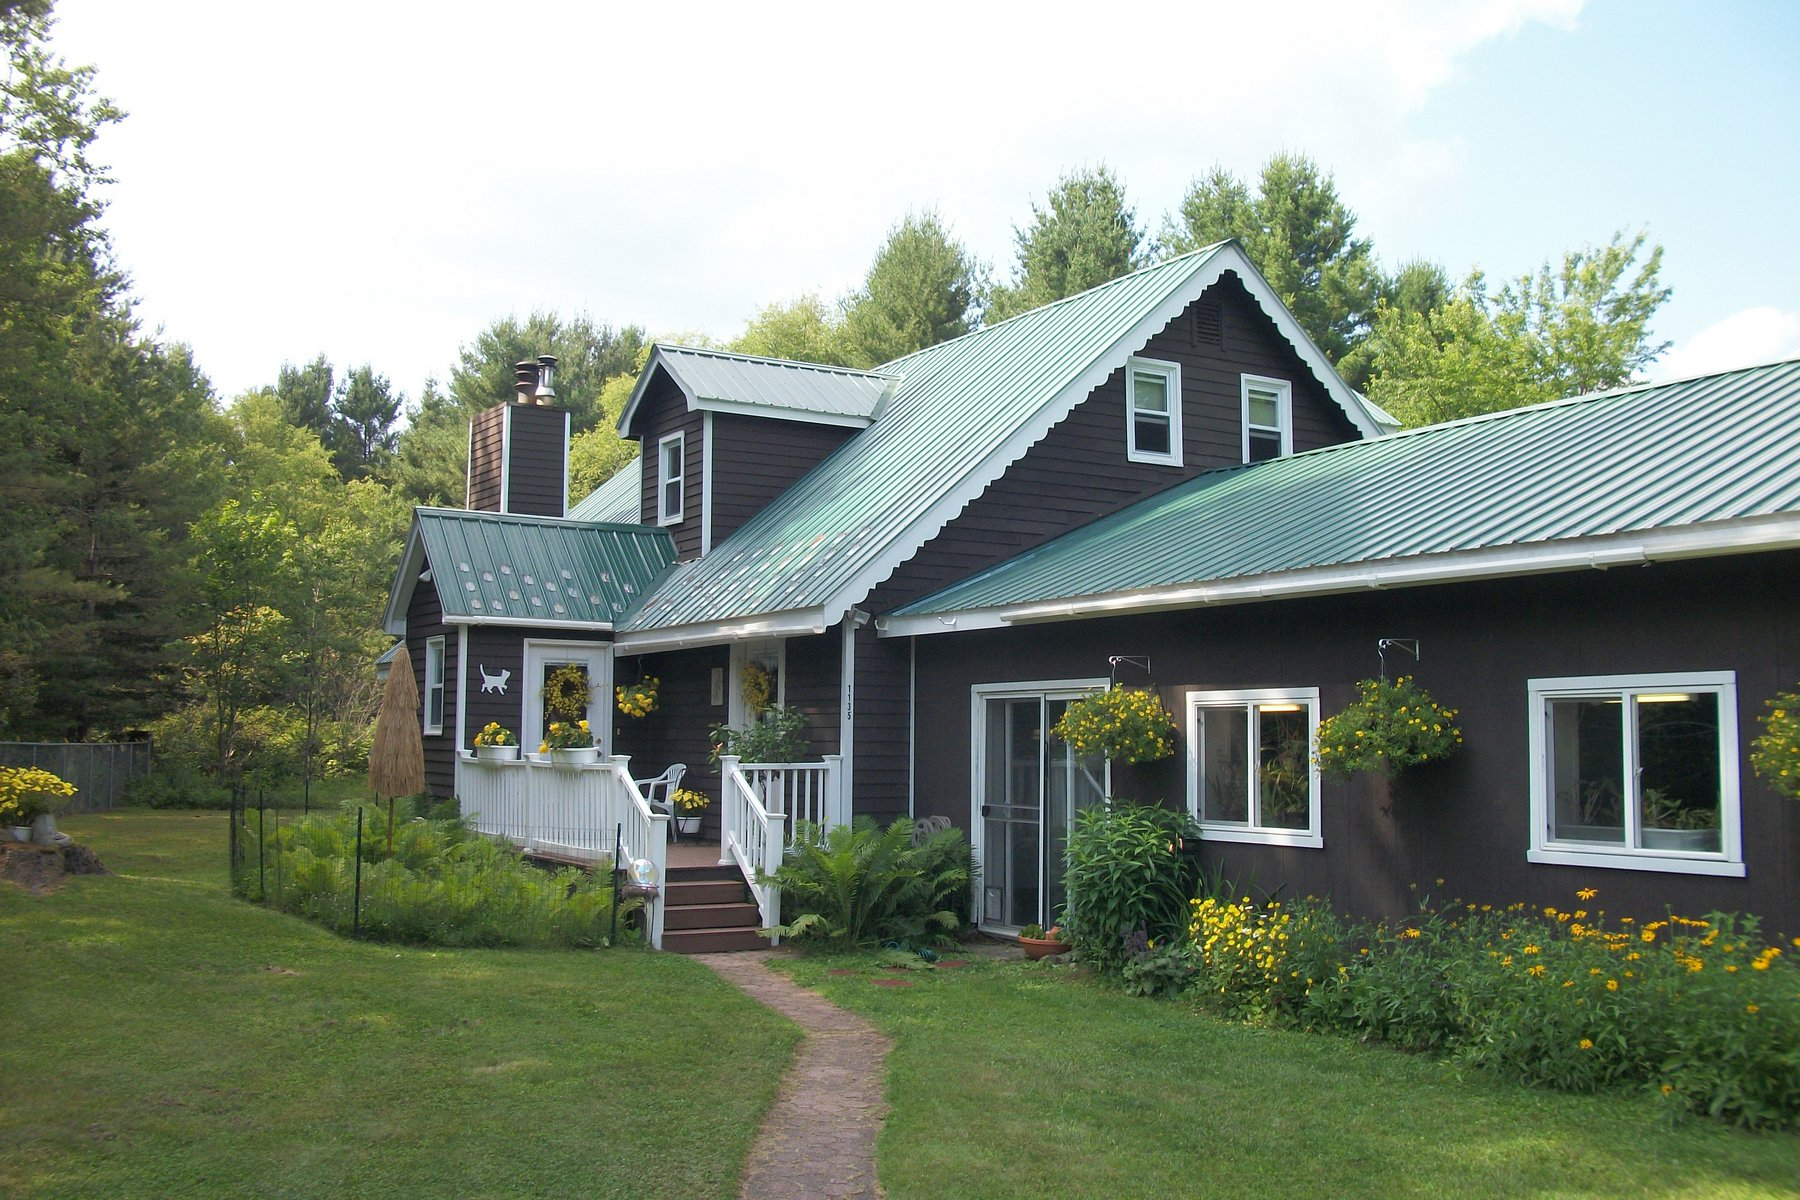 Single Family Home for Sale at Adirondack Foothills Year Round Cape Cod 1135 Figert Rd Ohio, New York 13324 United States